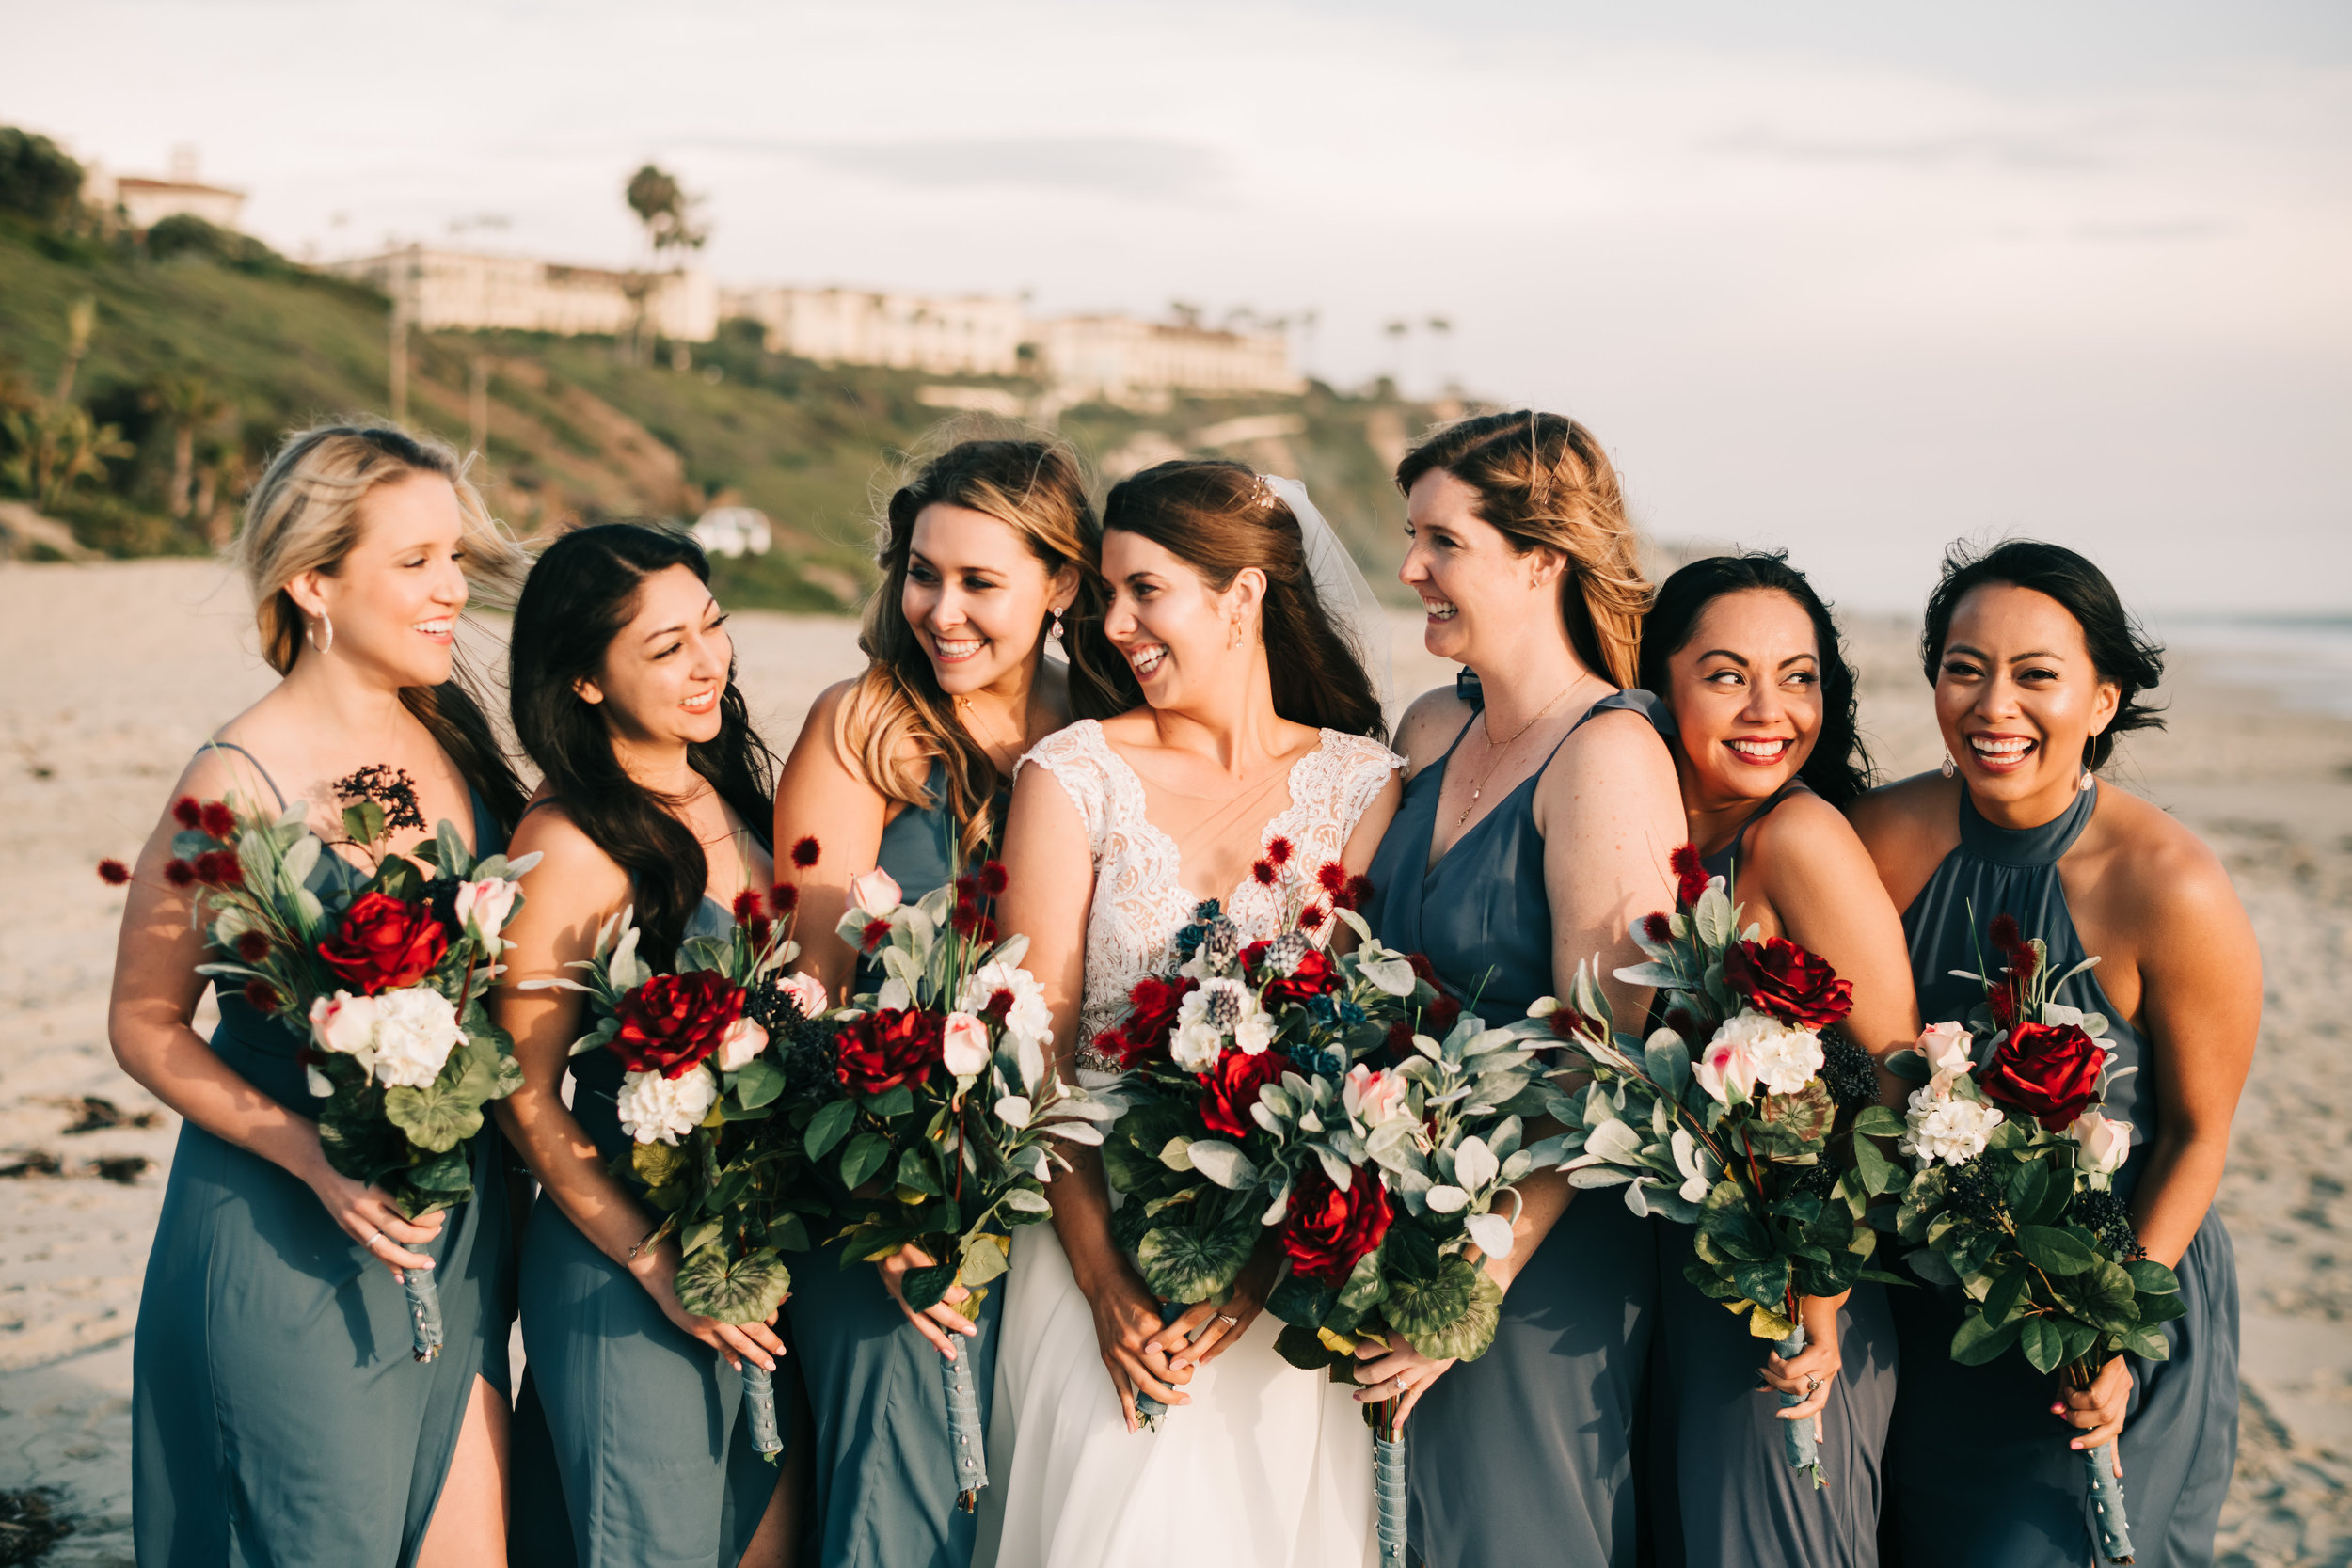 southern california laguna beach salt creek beach los angeles socal boho bay area akland san francisco engagement wedding nontraditional fun creative eclectic photographer magic-782.jpg